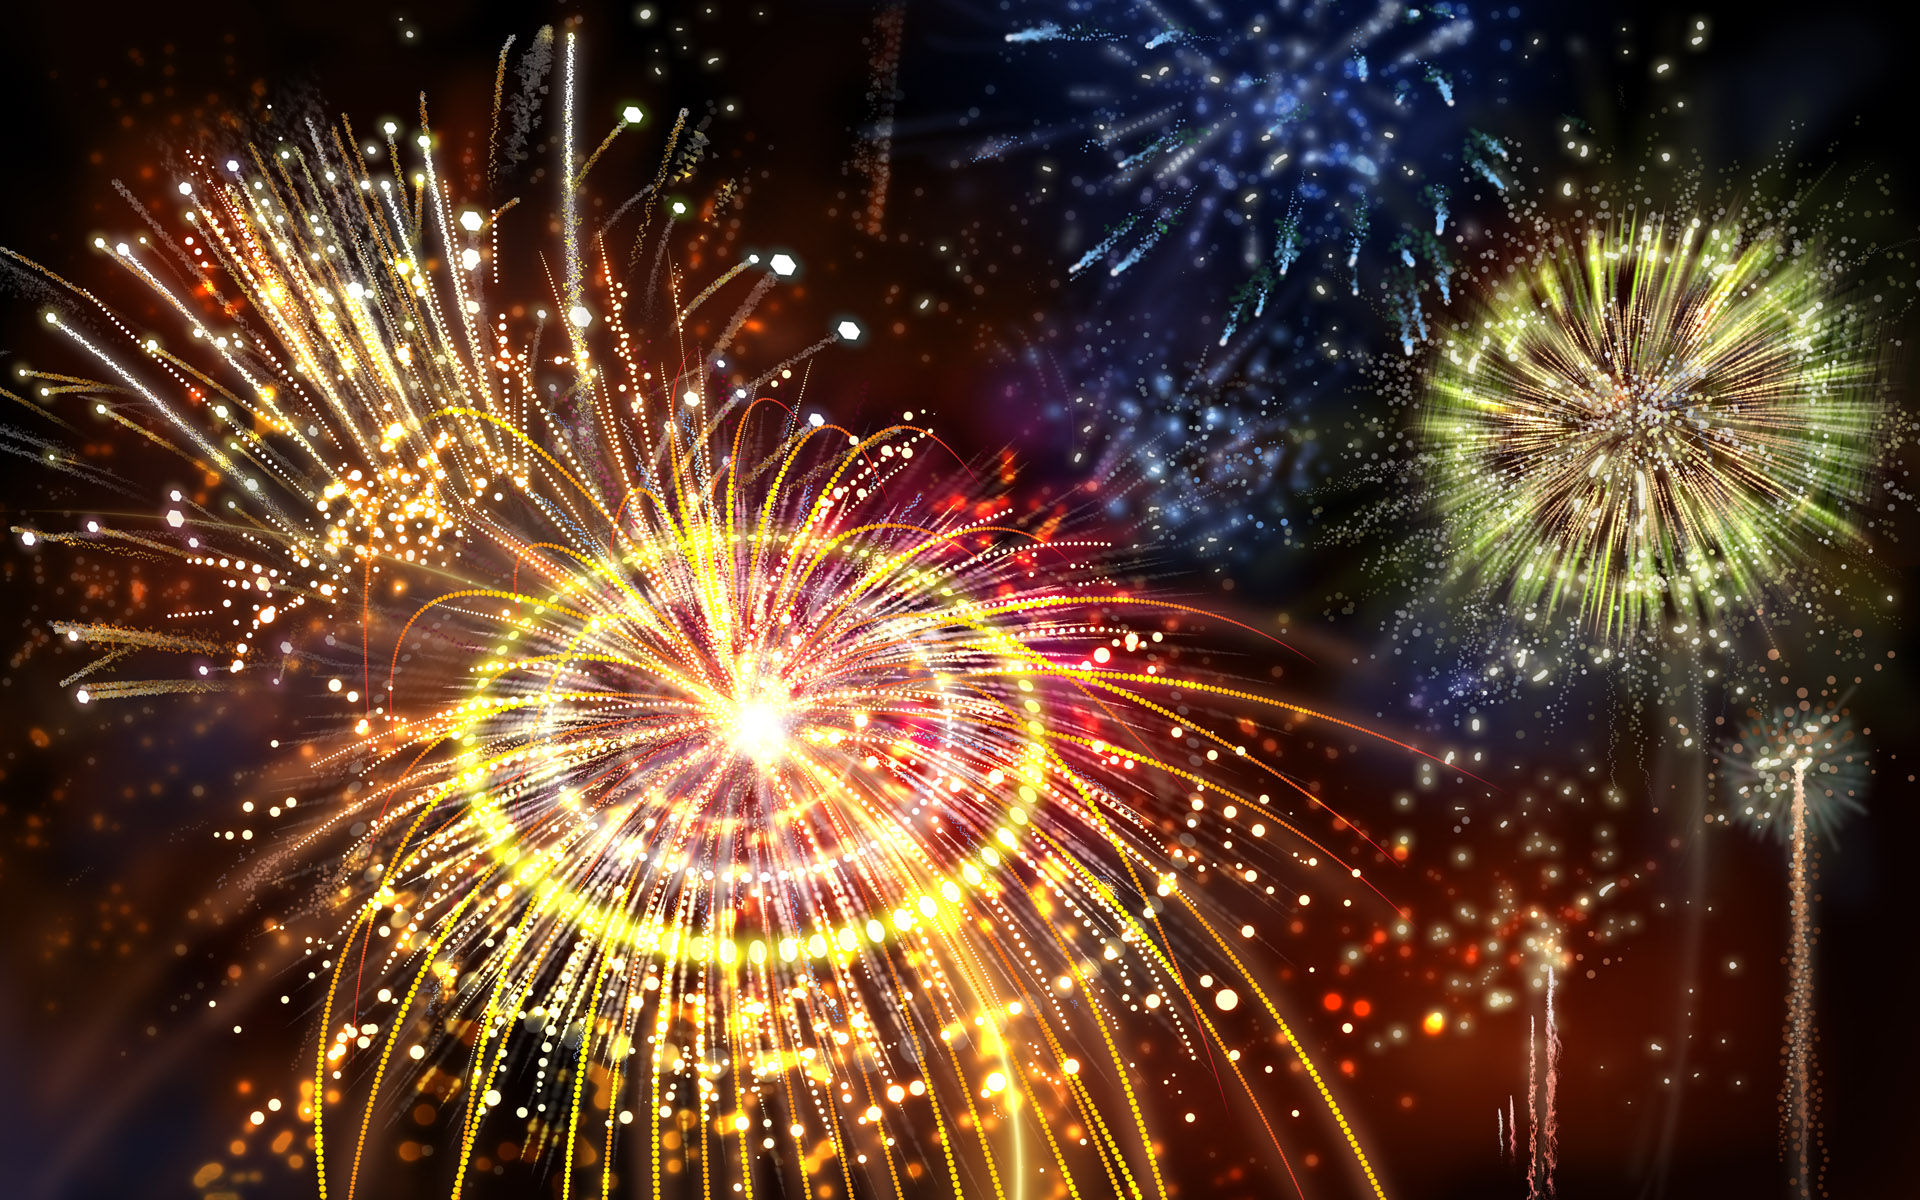 Fireworks 3D Wallpaper